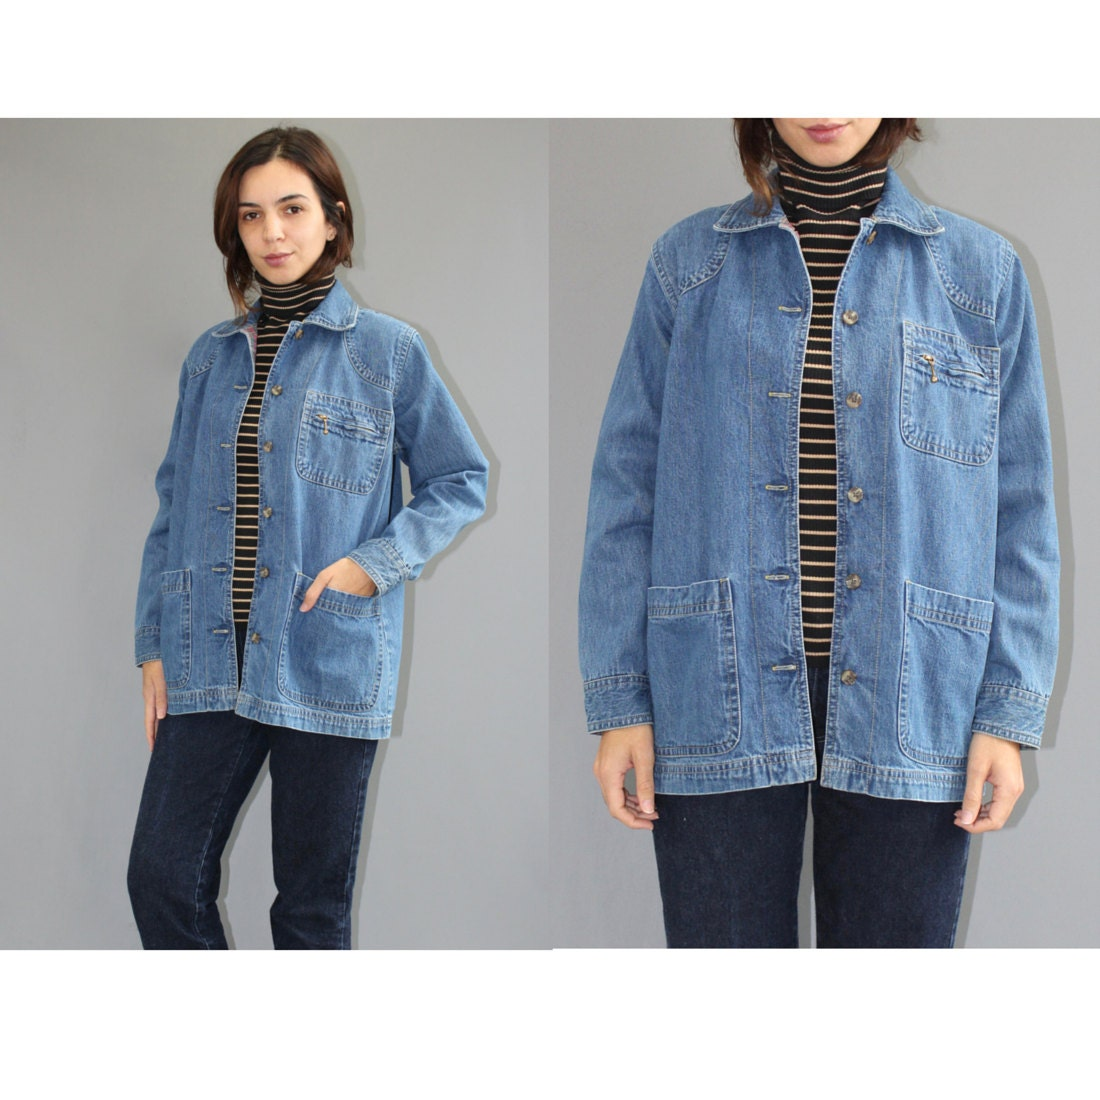 Barn Denim Jacket Small Womens Vintage Denim Jacket Small